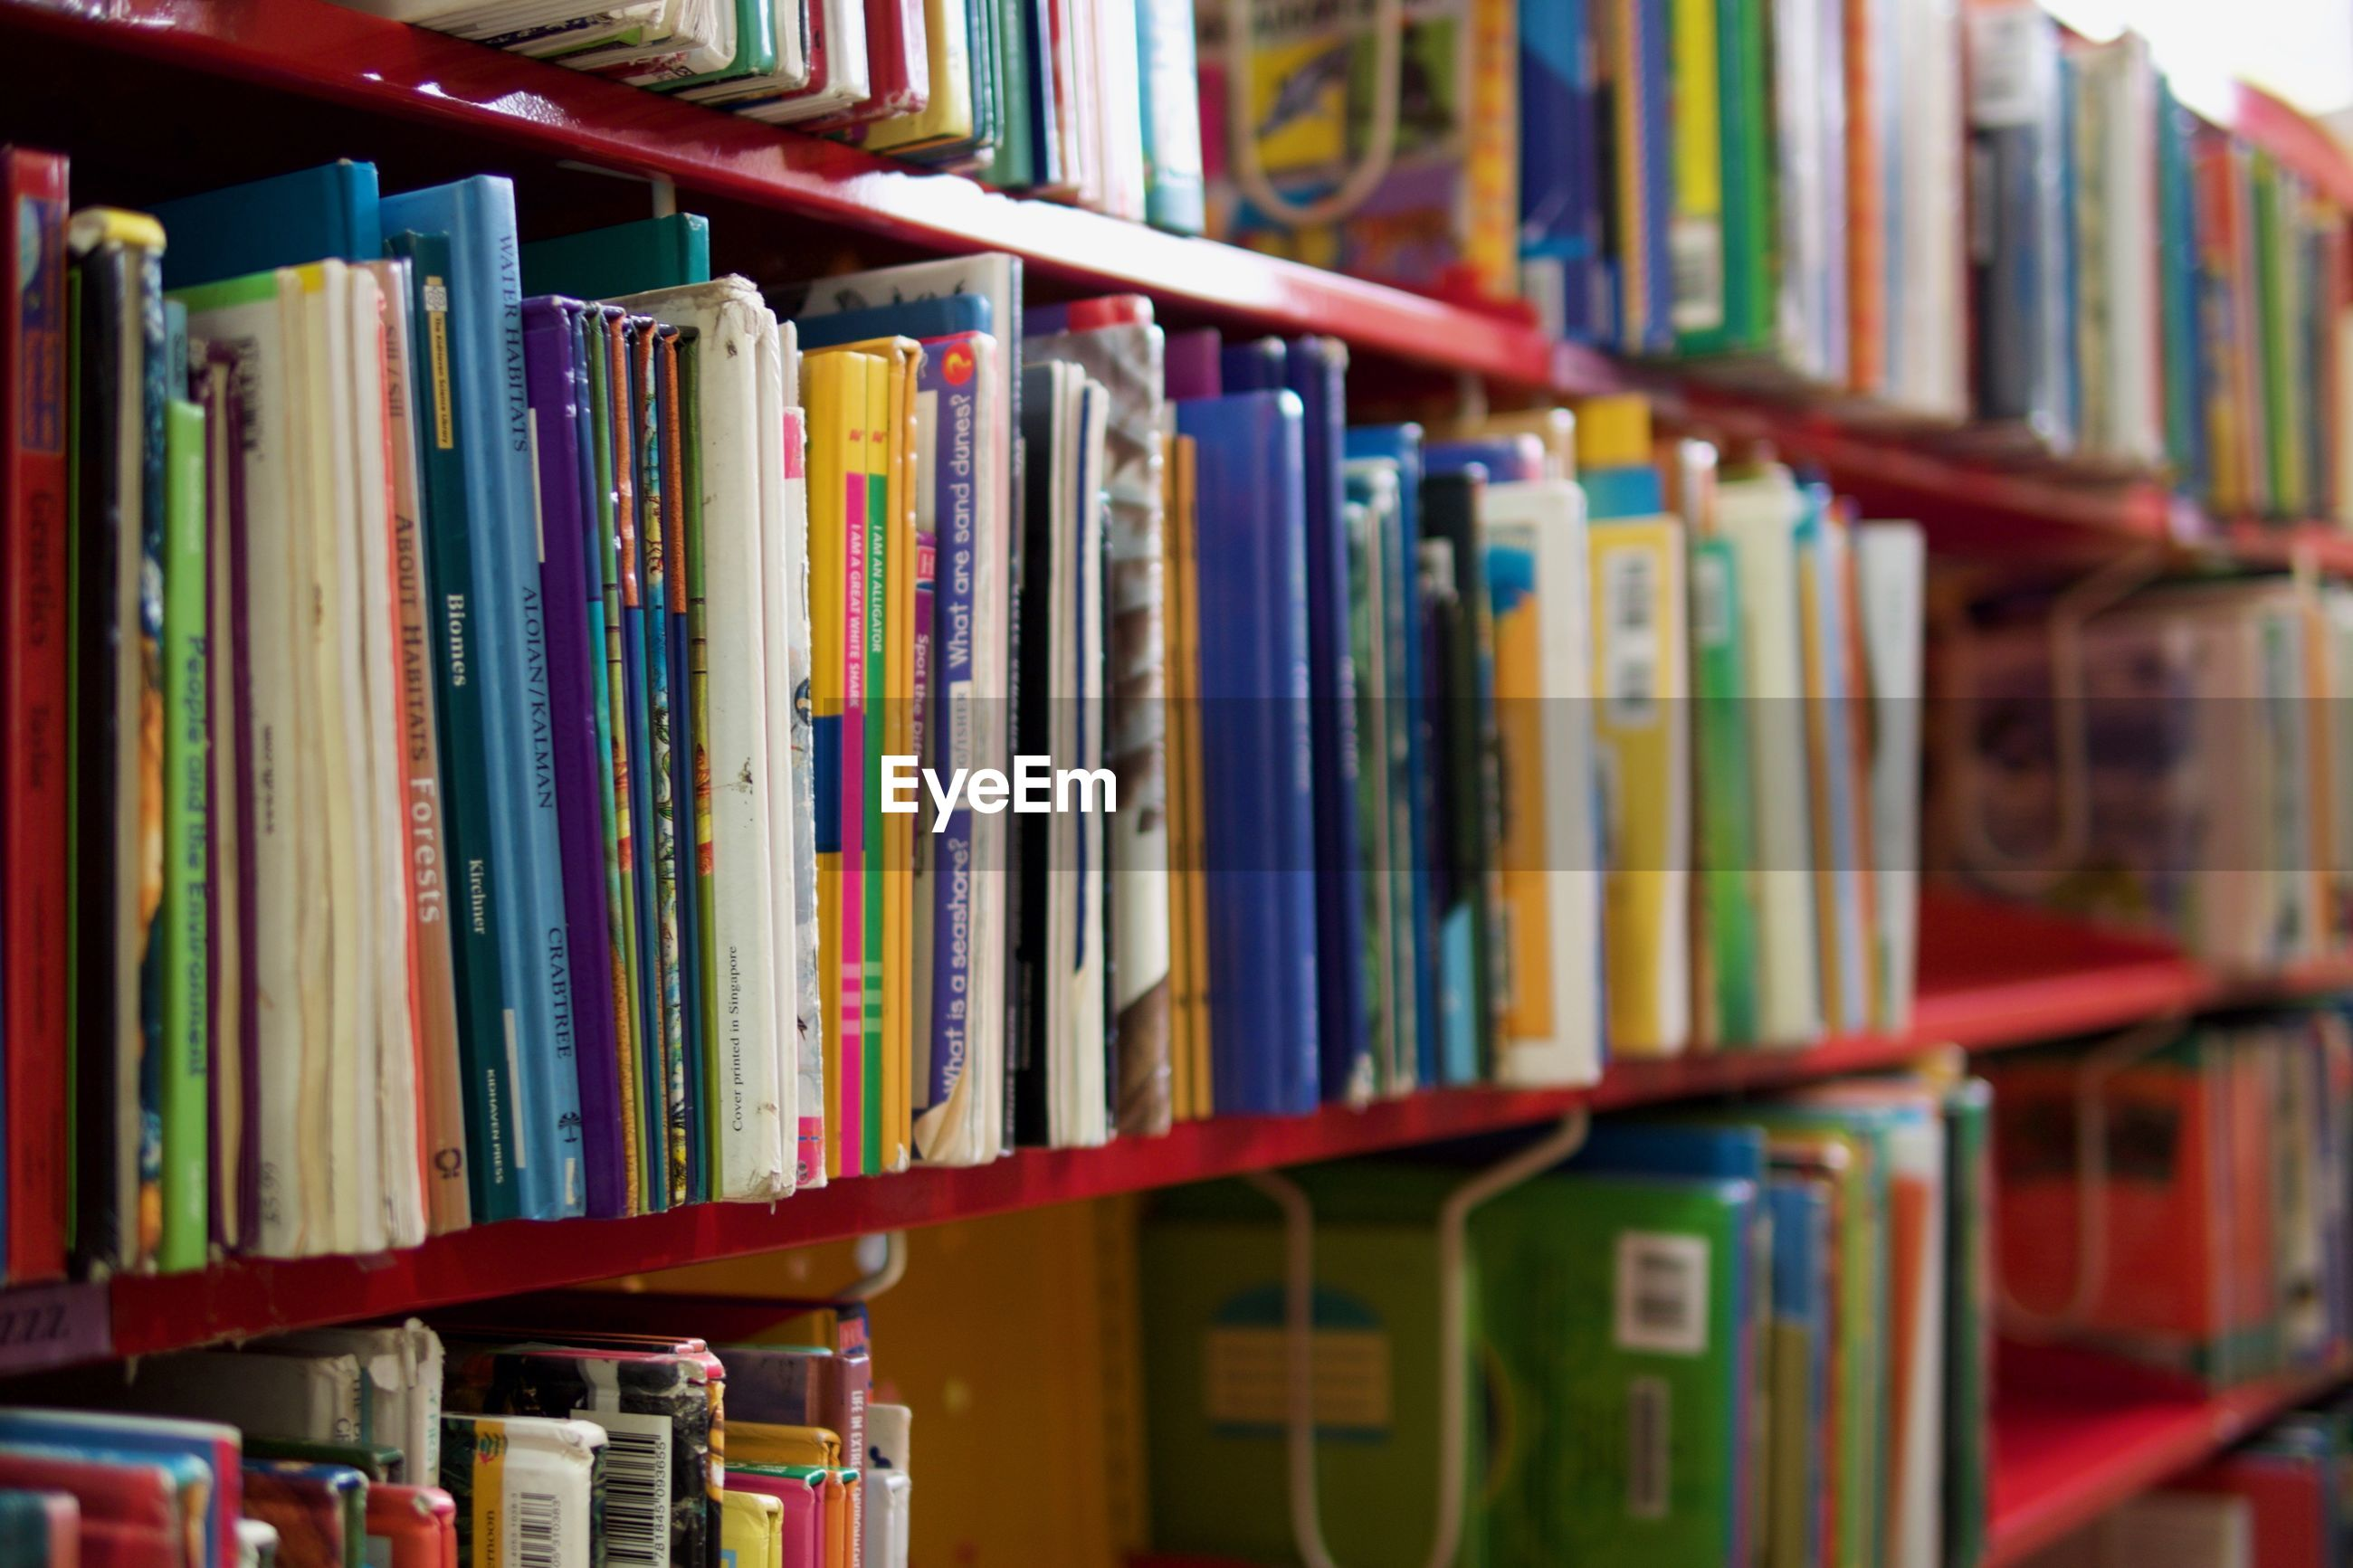 CLOSE-UP OF BOOKS IN SHELF AT LIBRARY